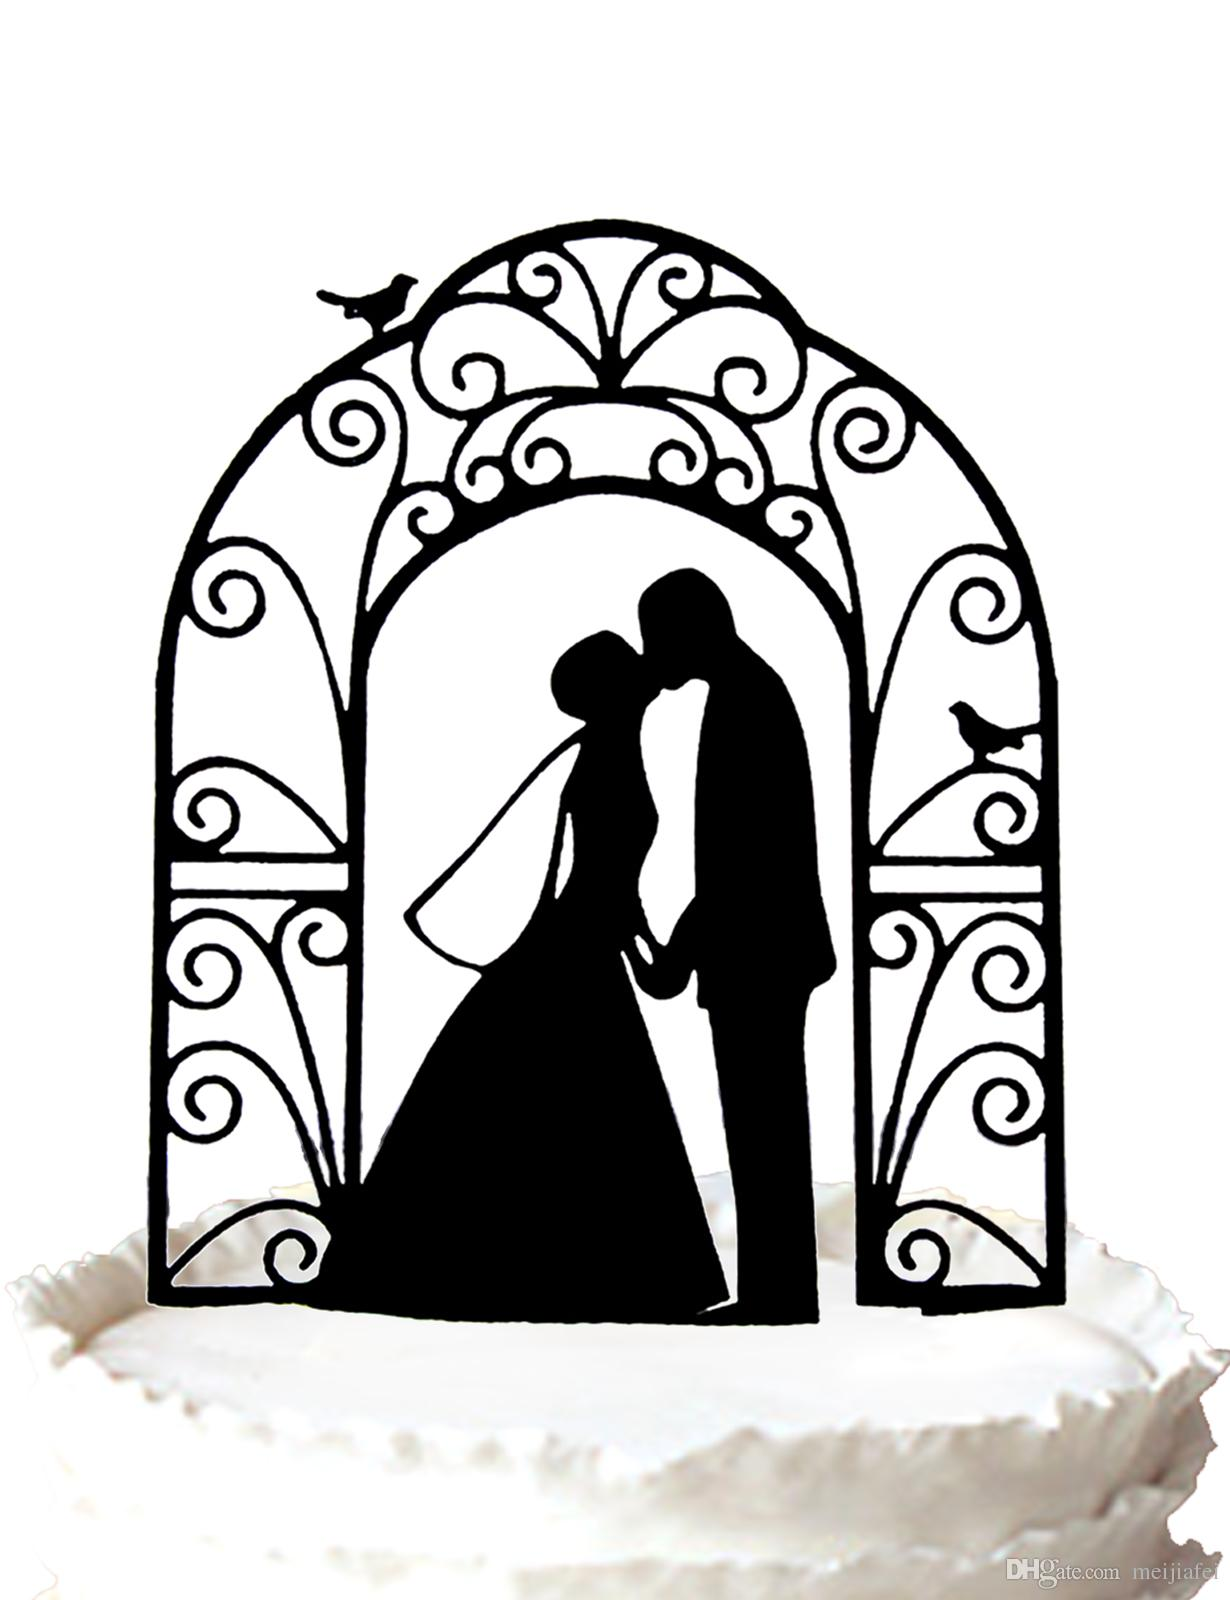 Bride And Groom Silhouette Wedding Clipart